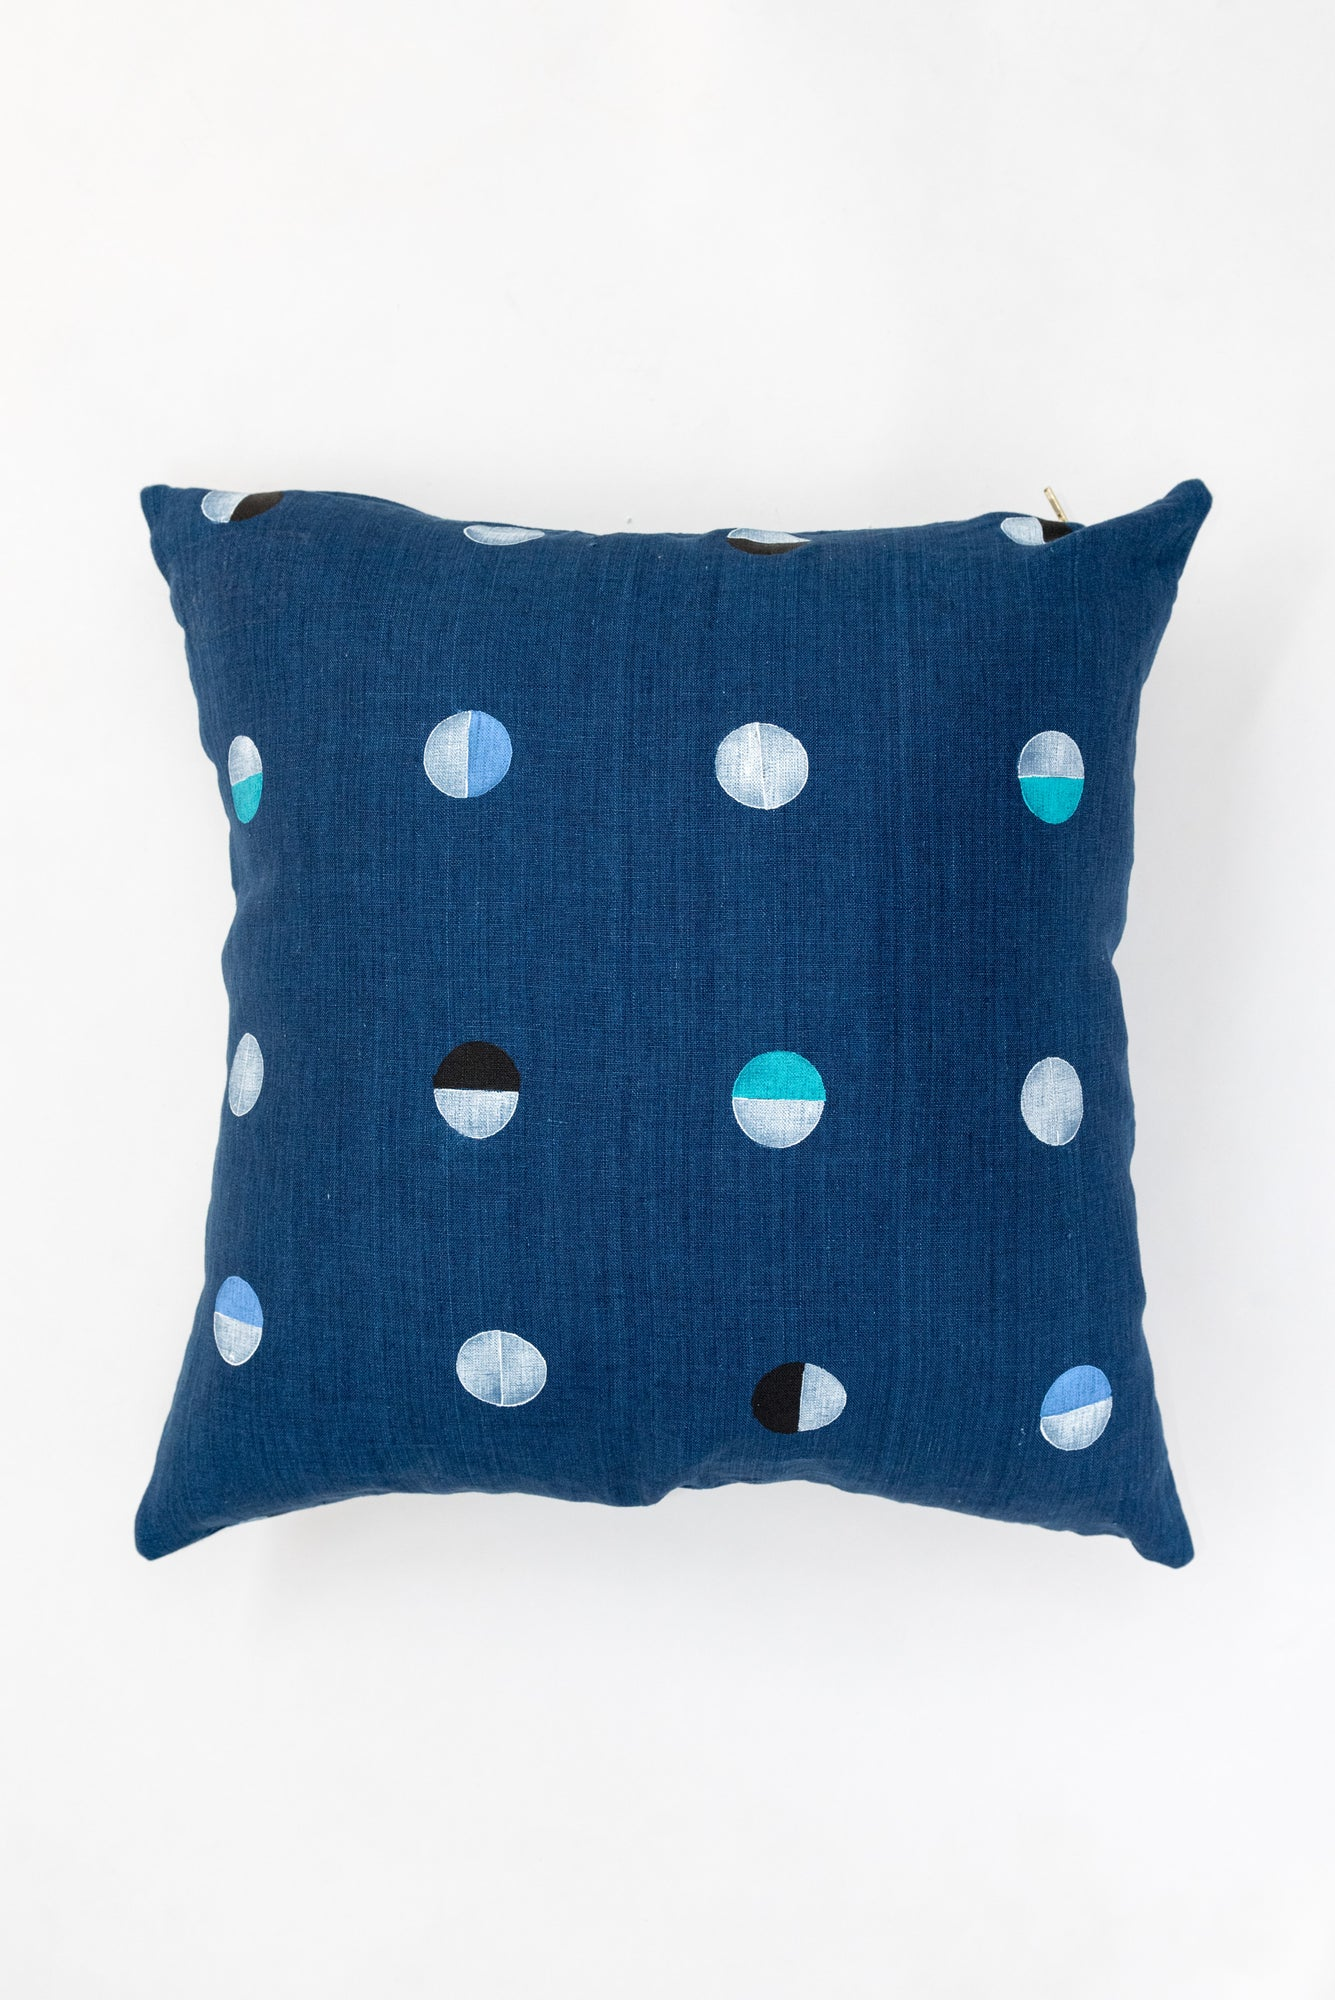 Joshua Tree Indigo Moons Pillow